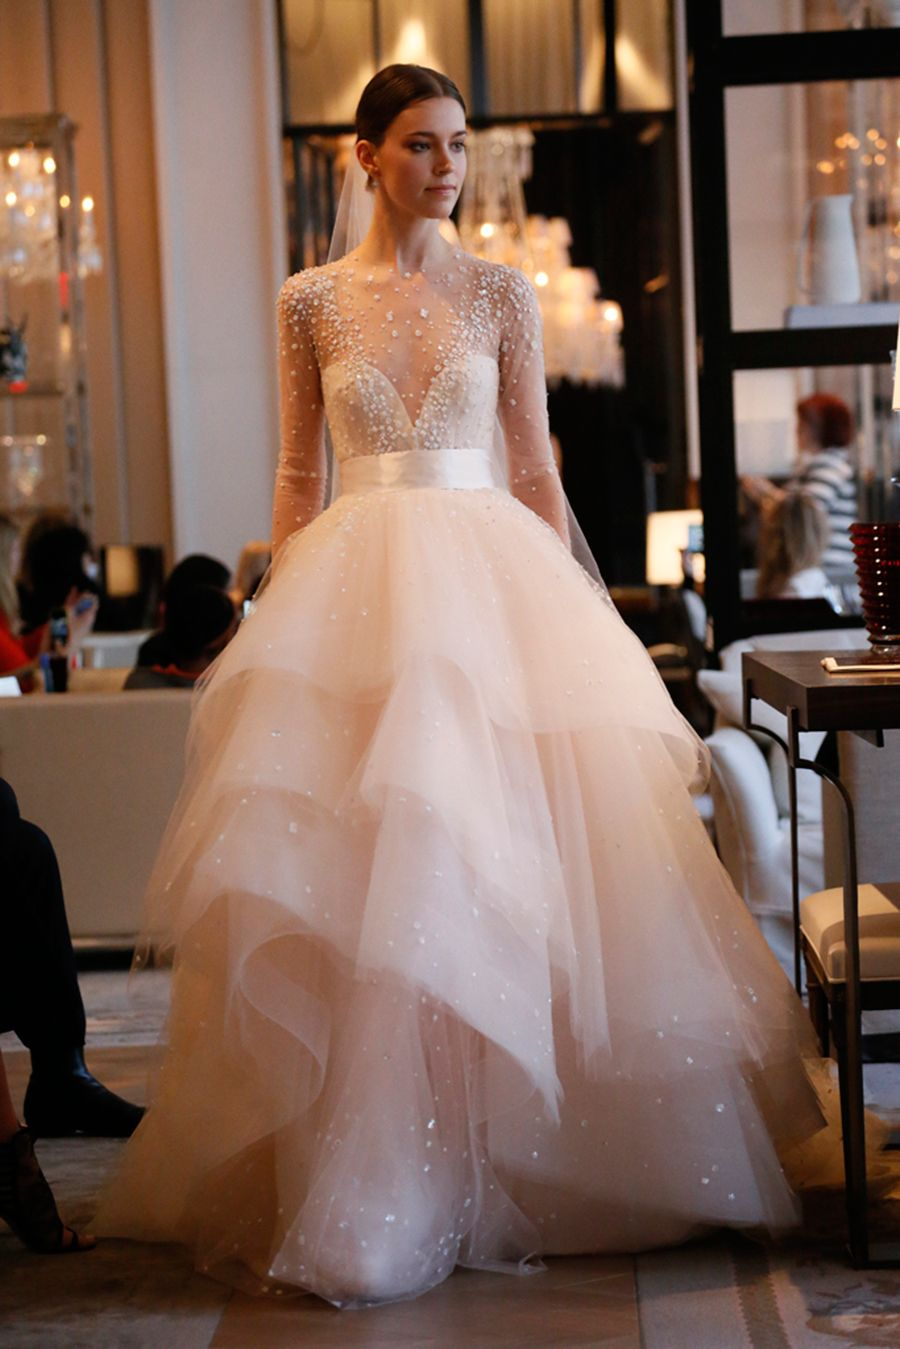 Long Sleeve Sparkle Confetti Tulle Ball Gown With Tiered Horsehair Skirt By Monique Lhuillier Best Of Bridal Week 2016 Part 1